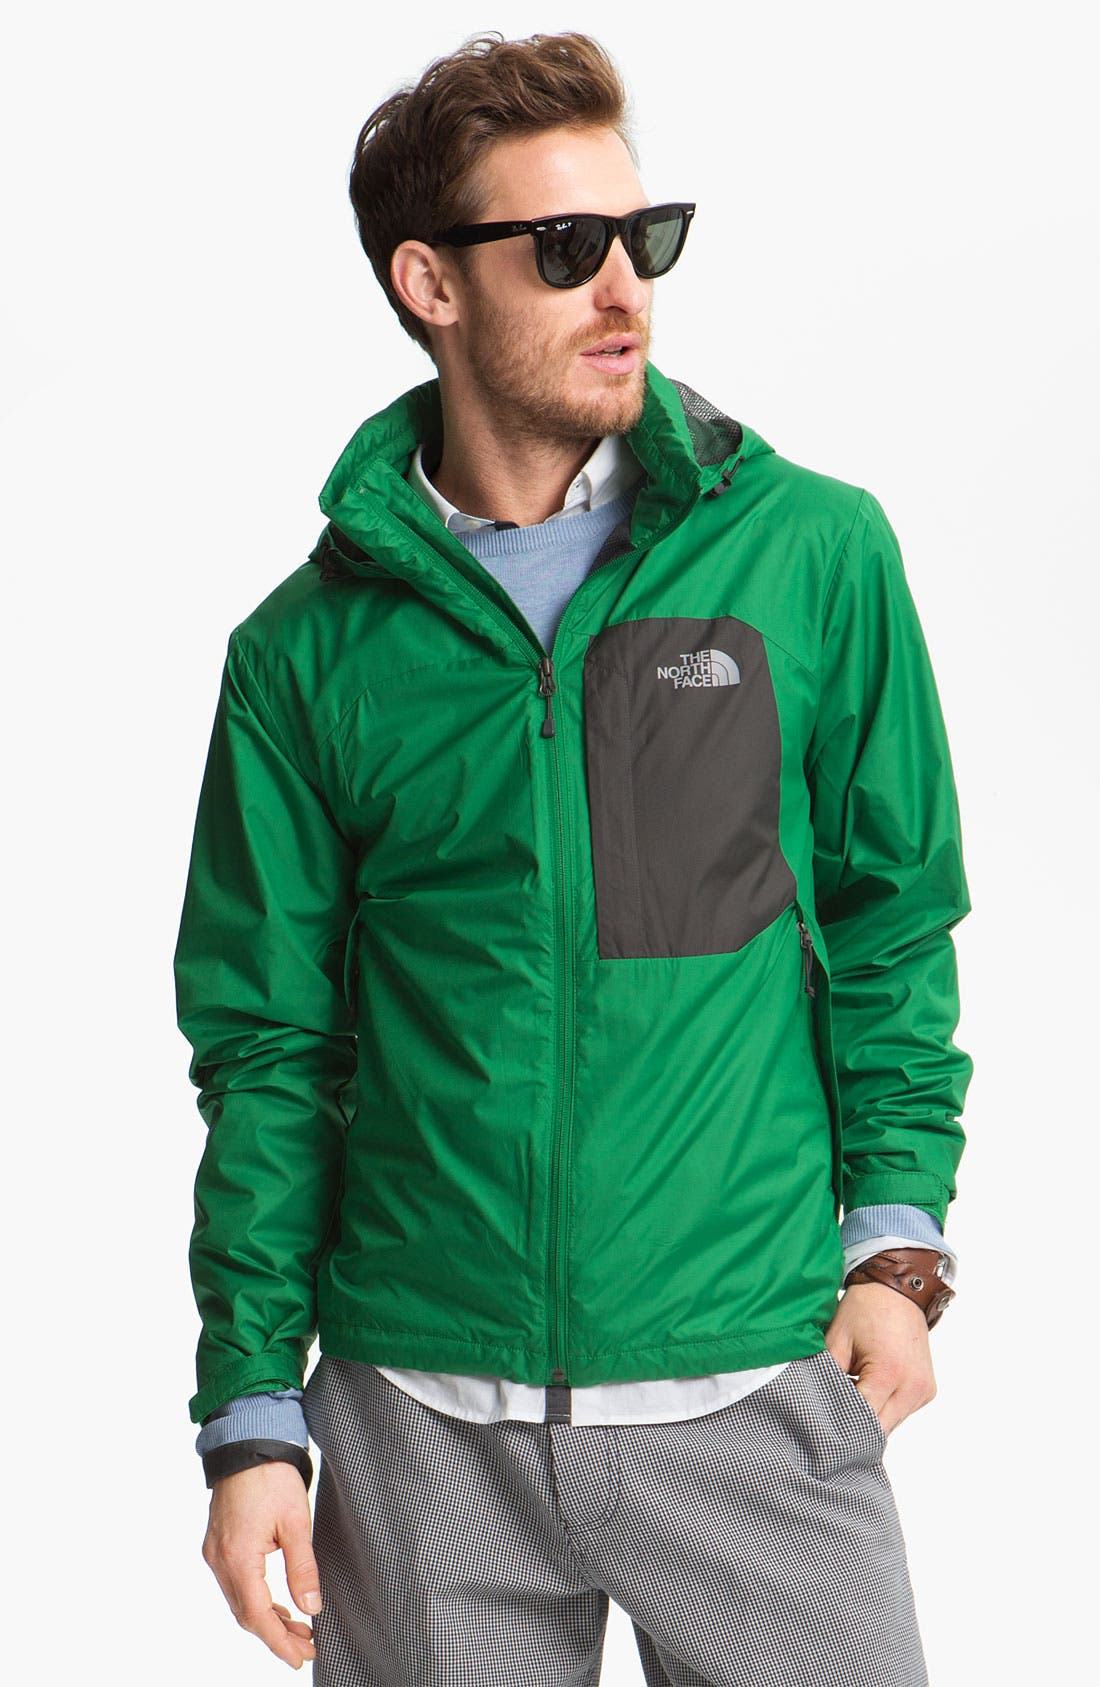 Alternate Image 1 Selected - The North Face 'Geosphere' Jacket